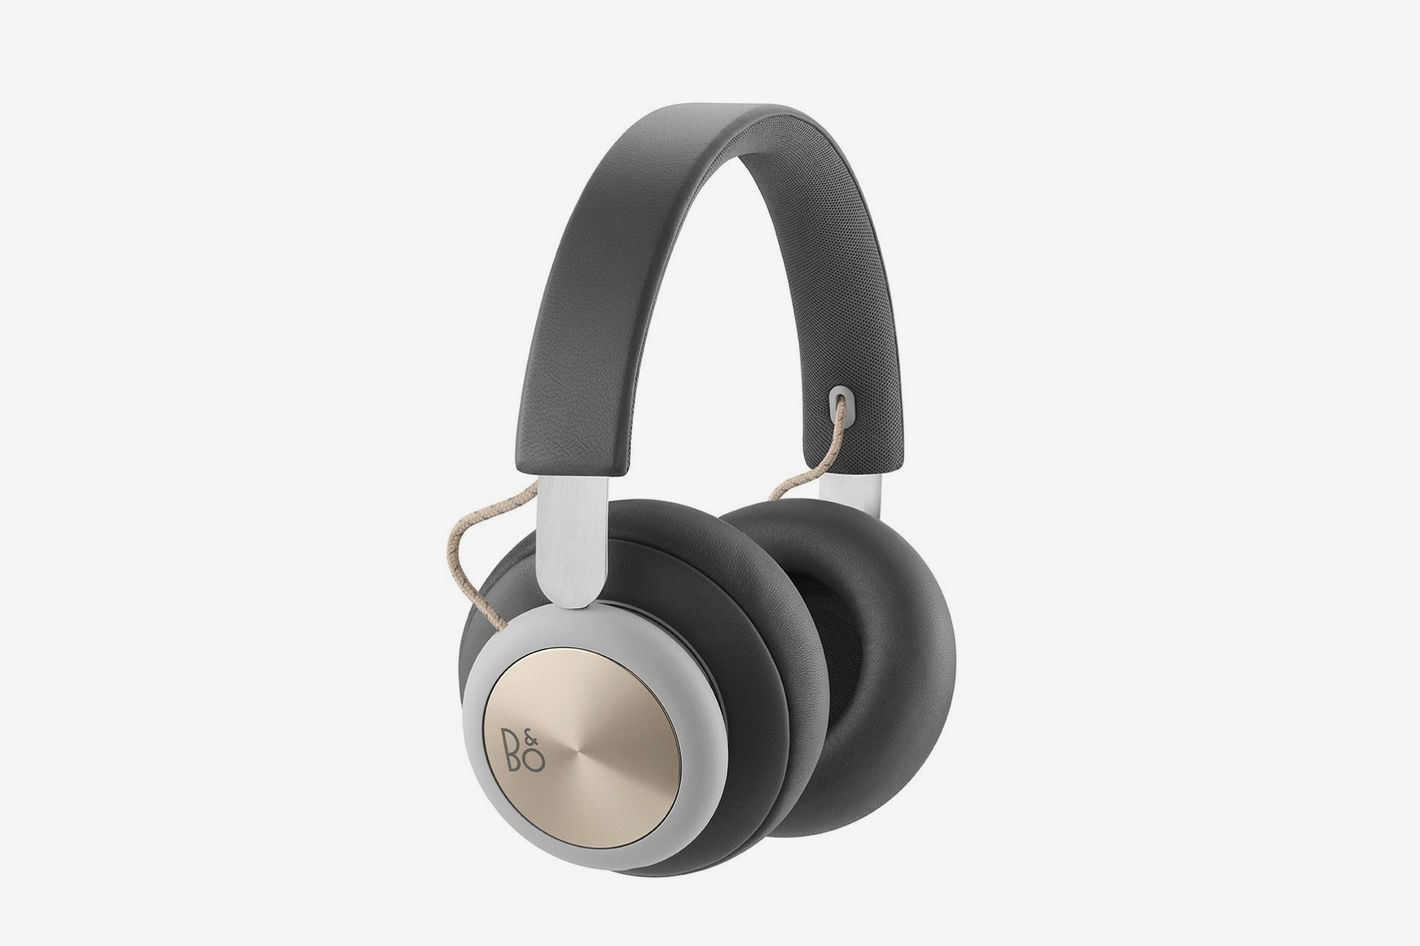 Bang Olufsen Beoplay H4 Bluetooth Headphones